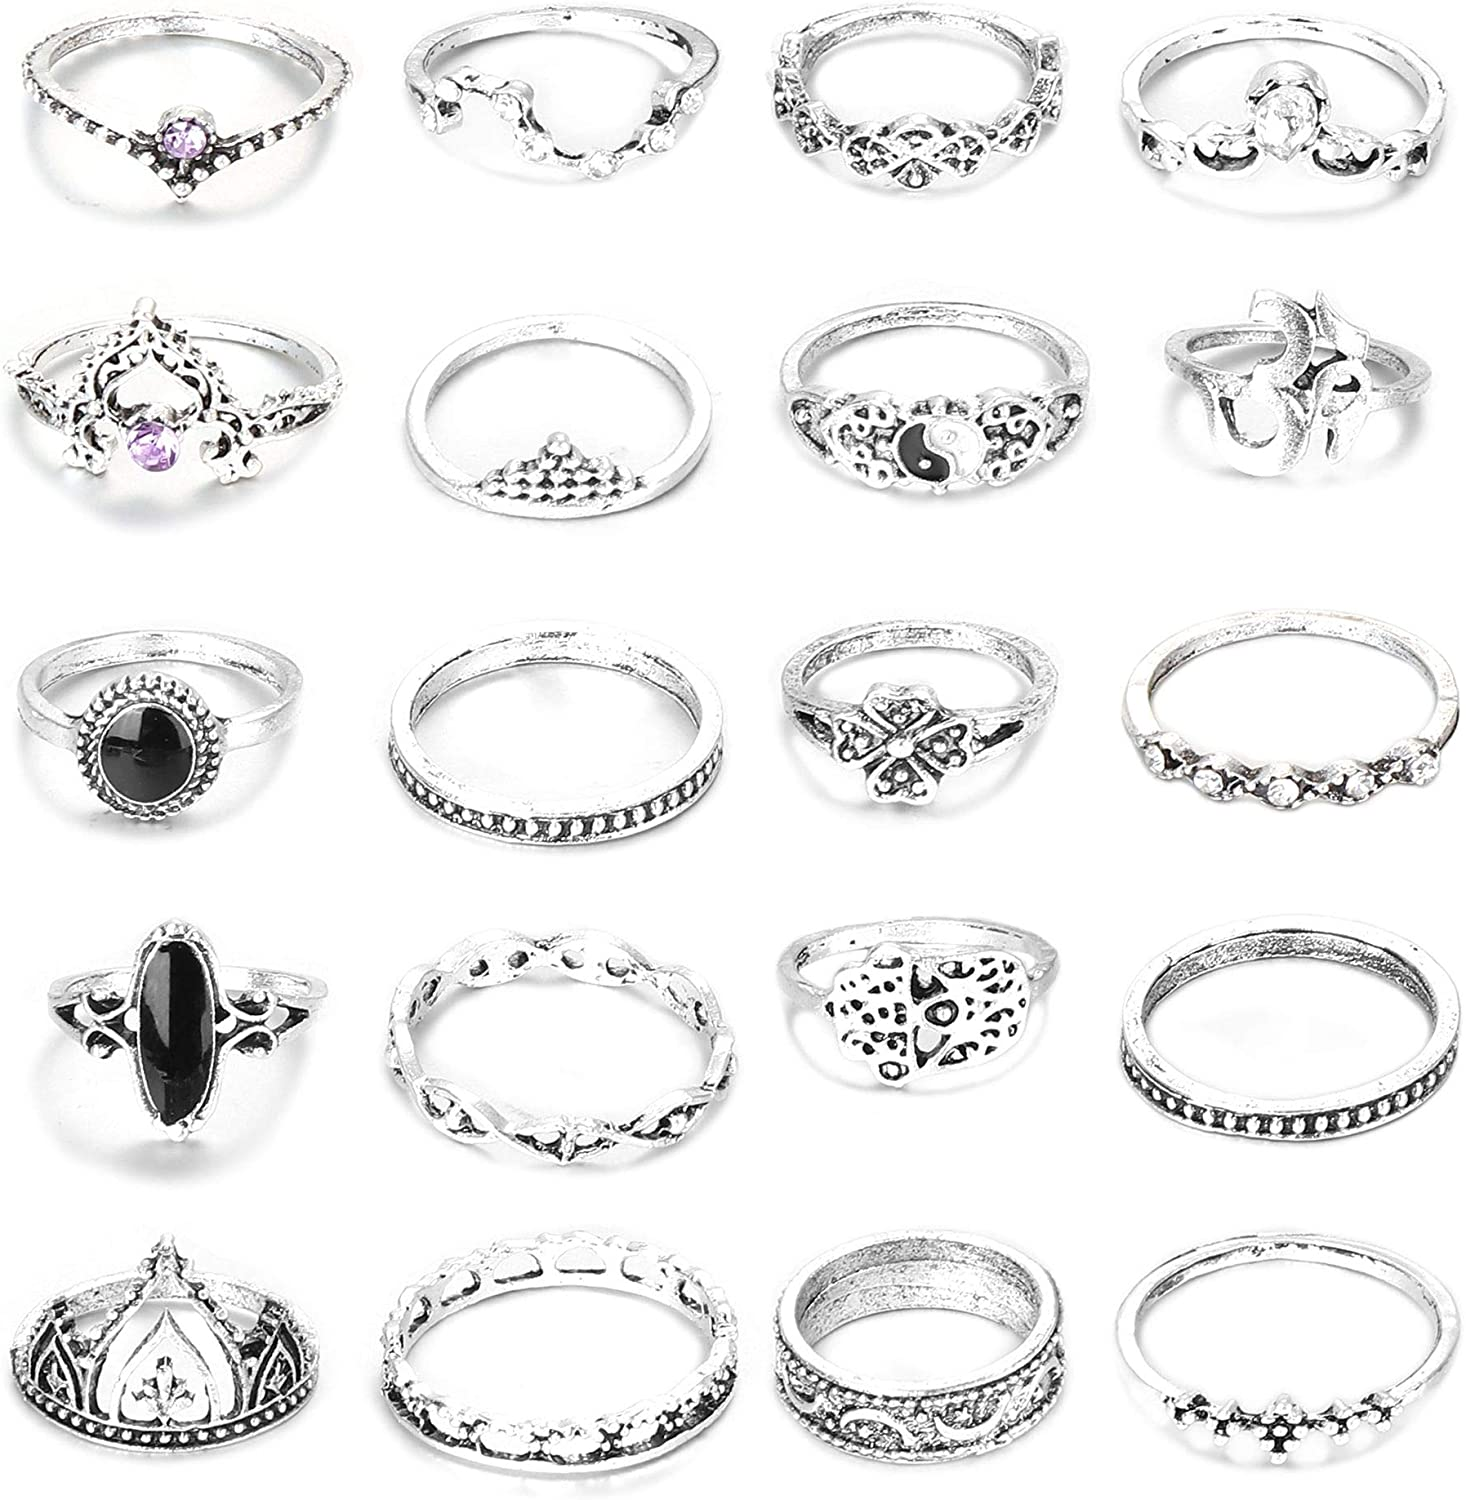 Besteel 20 Pcs Vintage Knuckle Ring Set for Women Girls Bohemian Style Stackable Midi Rings Hollow Carved Joint Ring